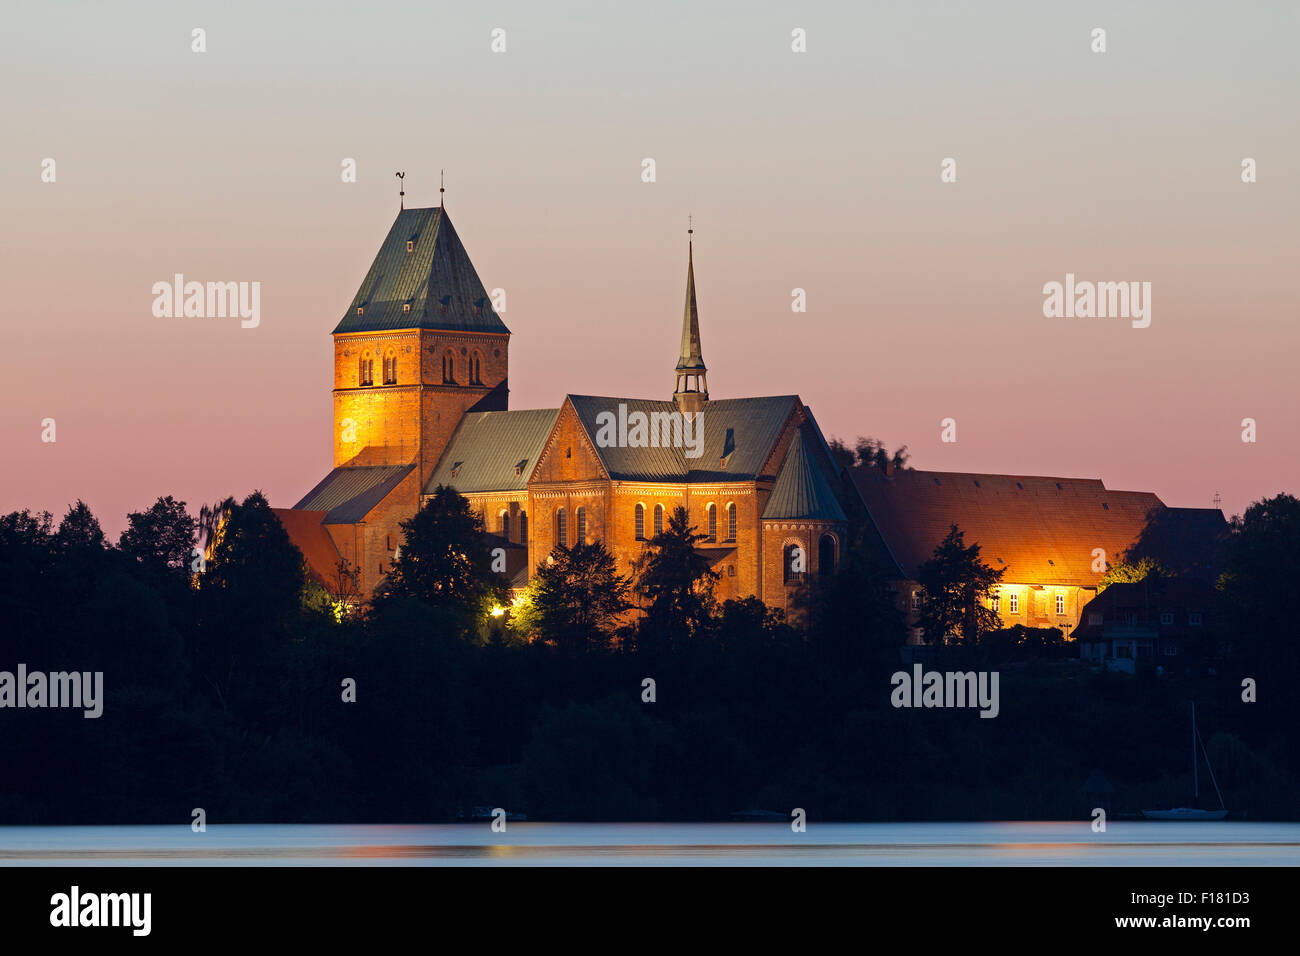 illuminated cathedral Ratzeburg, Schleswig-Holstein, Germany - Stock Image